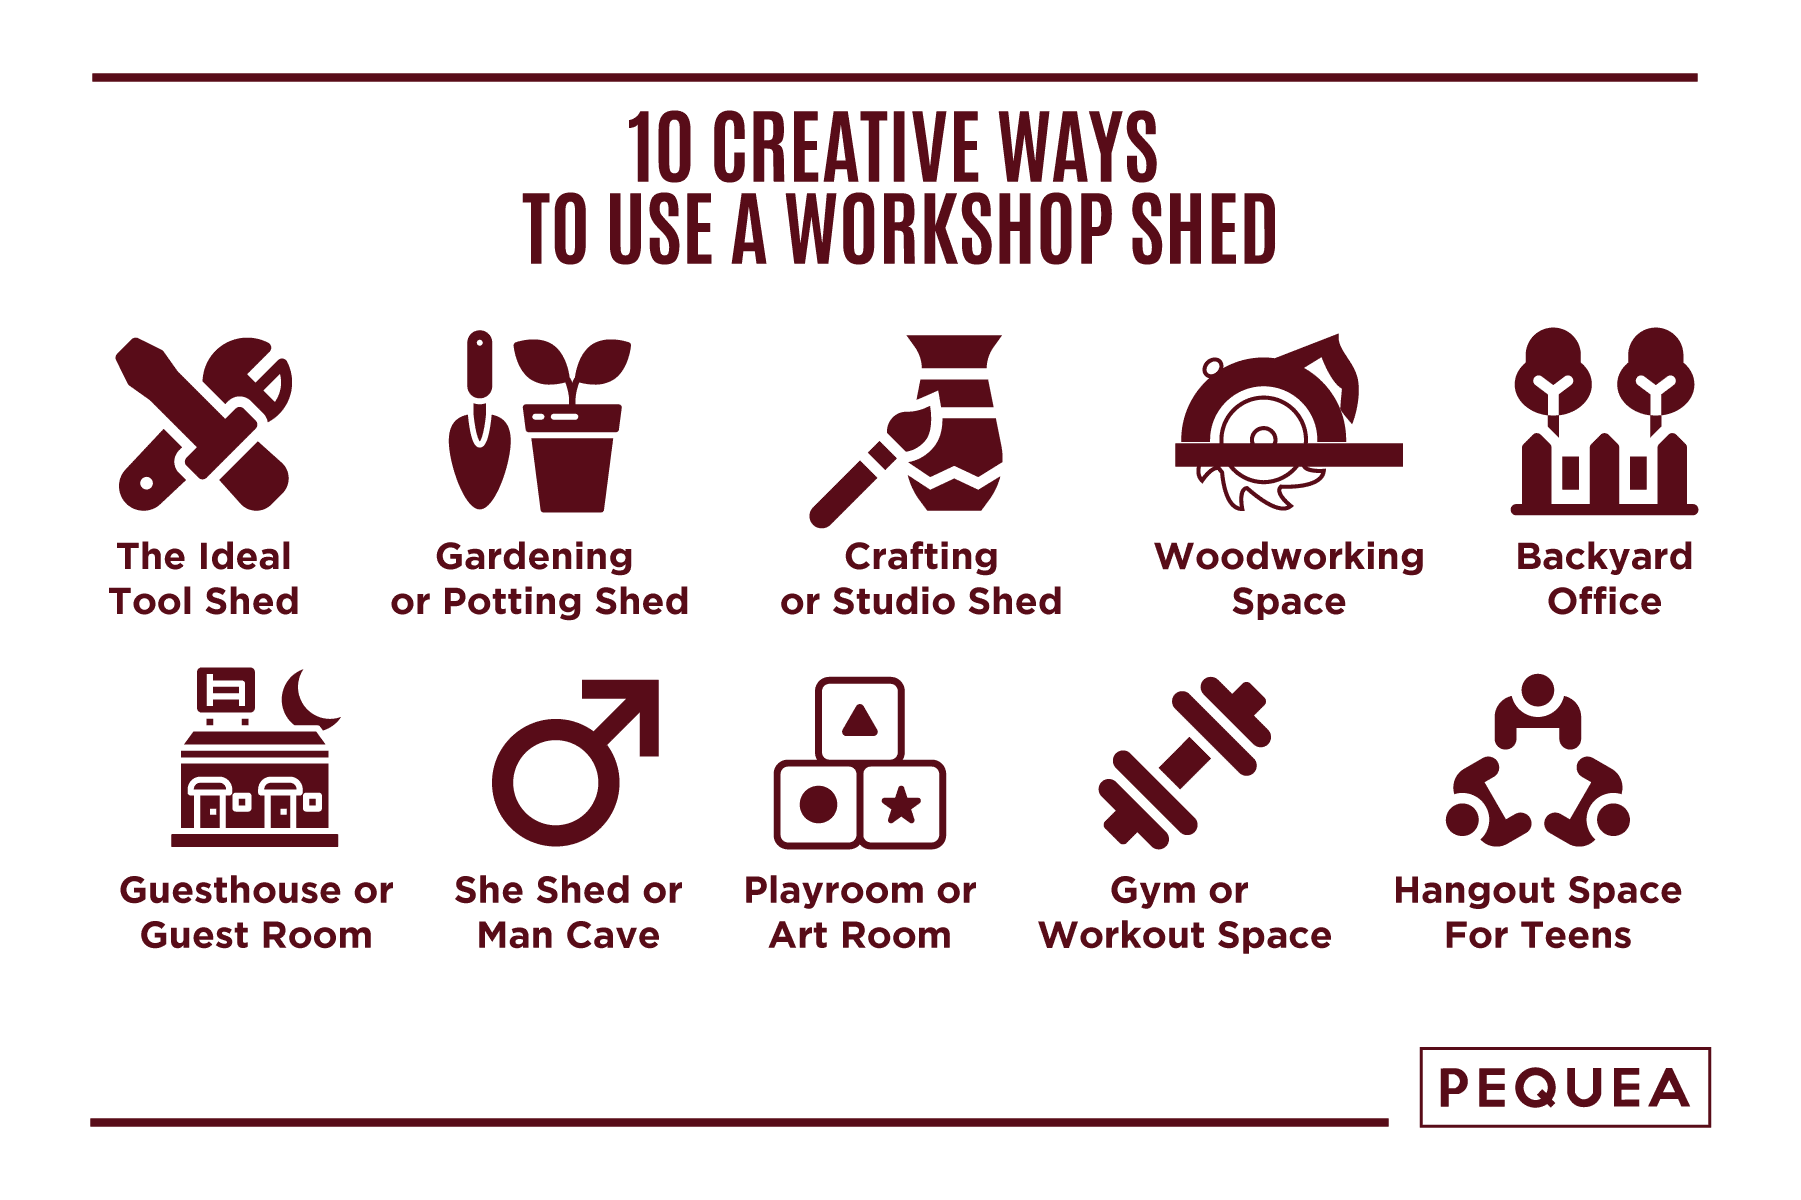 creative ways to use a workshop shed